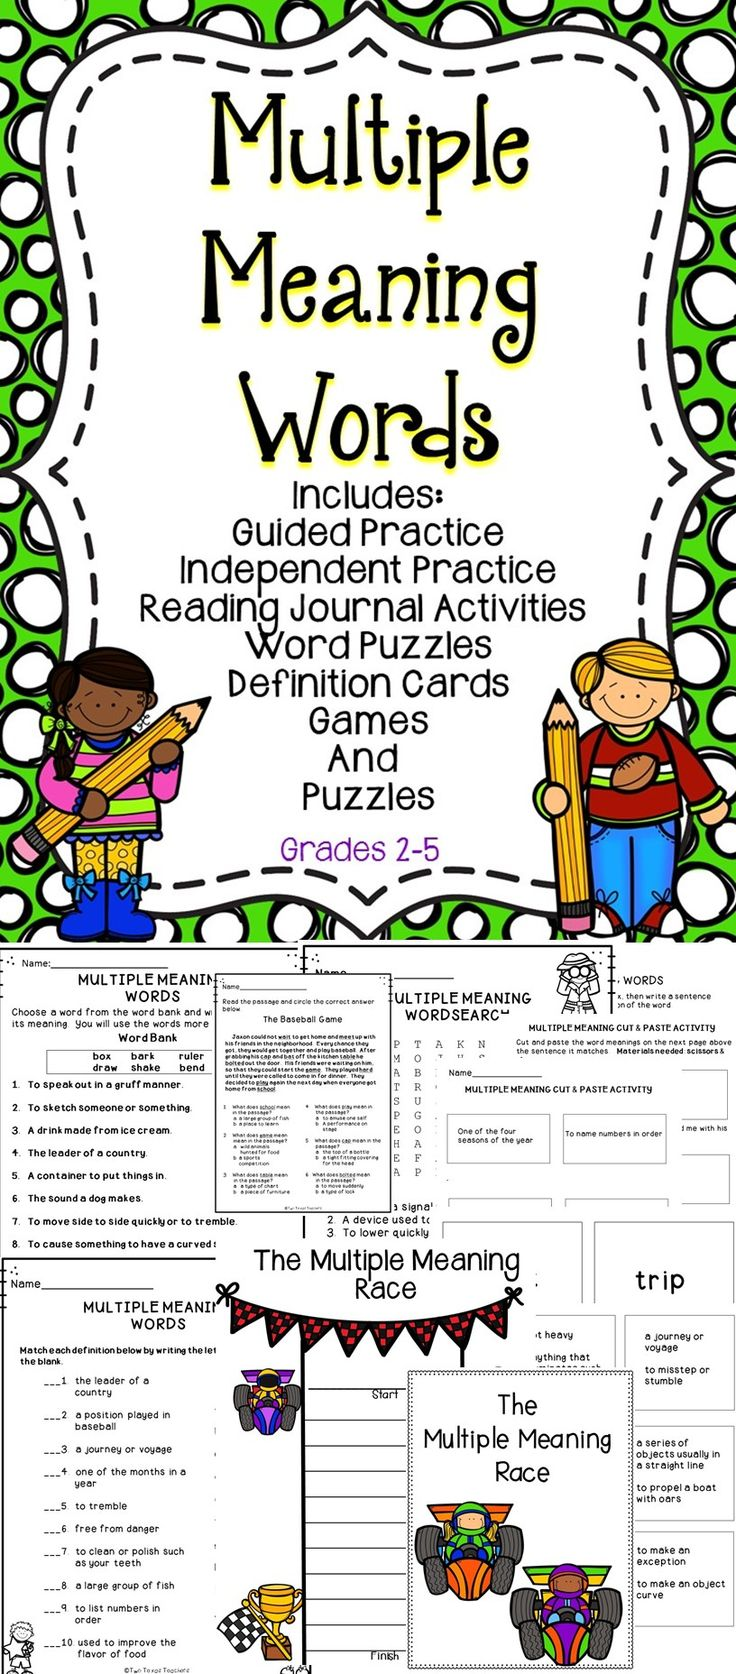 math worksheet : 1000 images about teaching multiple meaning words on pinterest  : Words With Multiple Meanings Worksheet 3rd Grade